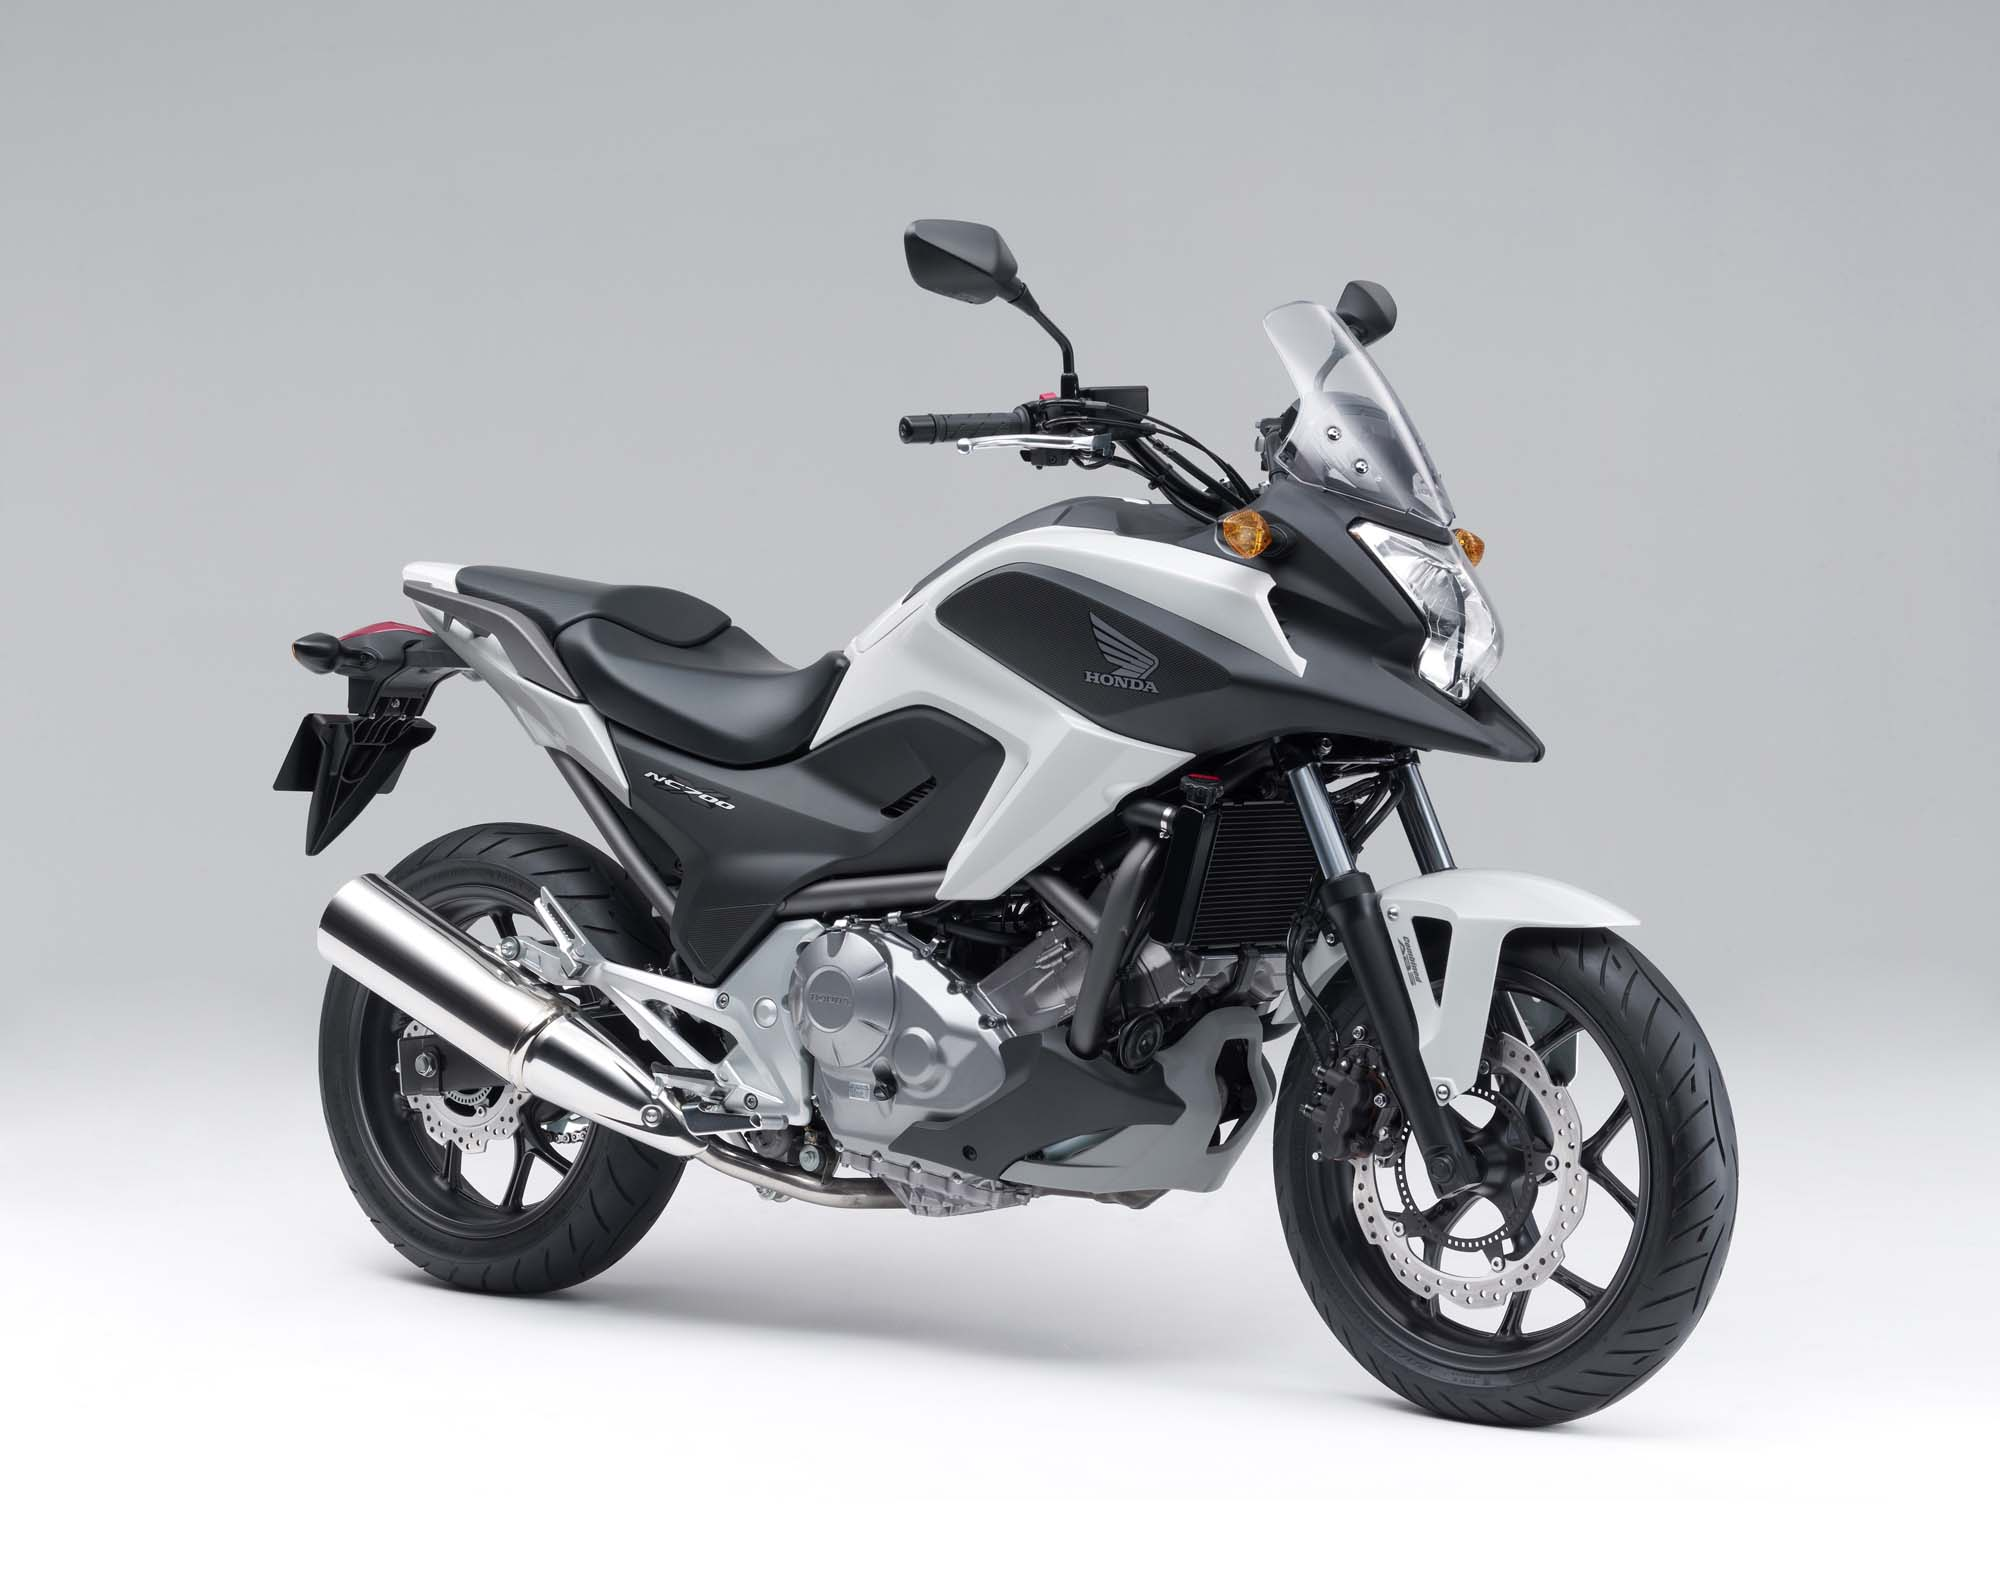 Can You Ride A Honda Nc700x With An A2 Licence